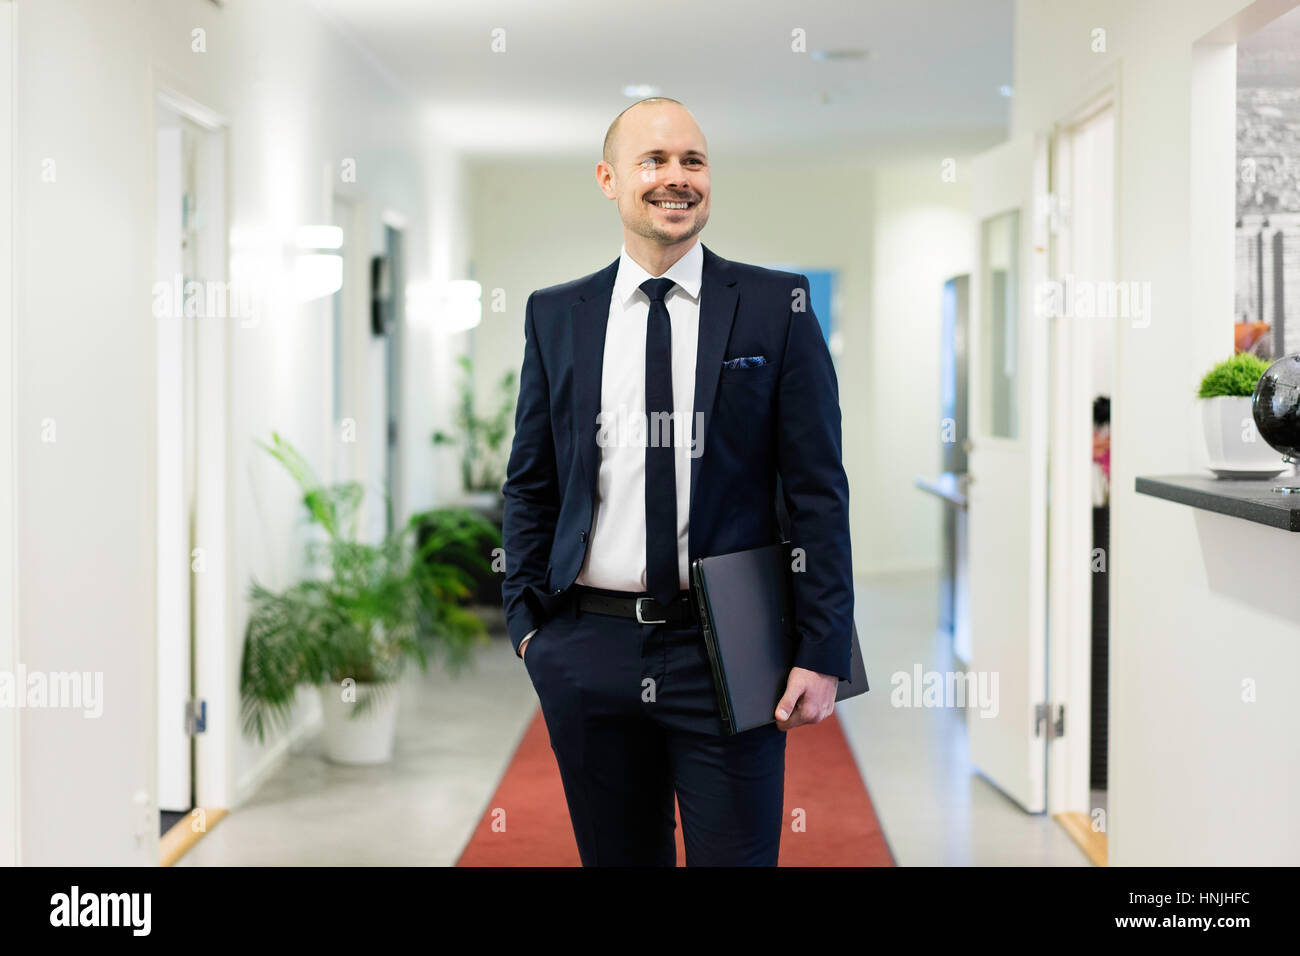 Swedish caucasian man in suit and tie. Scandinavian European ethnicity. Indoor offices. Smiling and carry laptop. - Stock Image